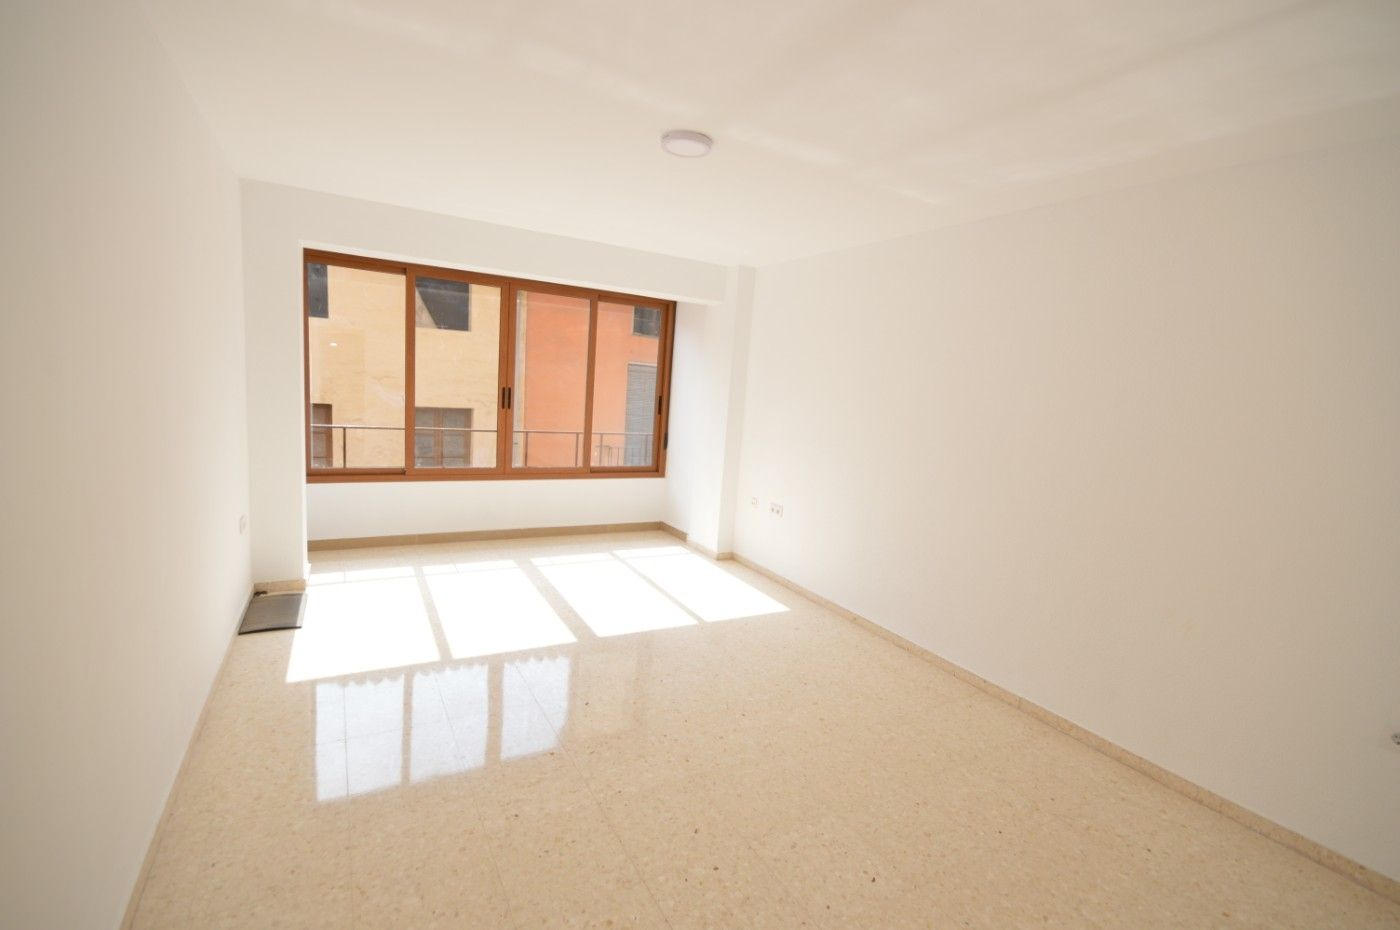 Rent Flat in Xàtiva. Piso sin muebles